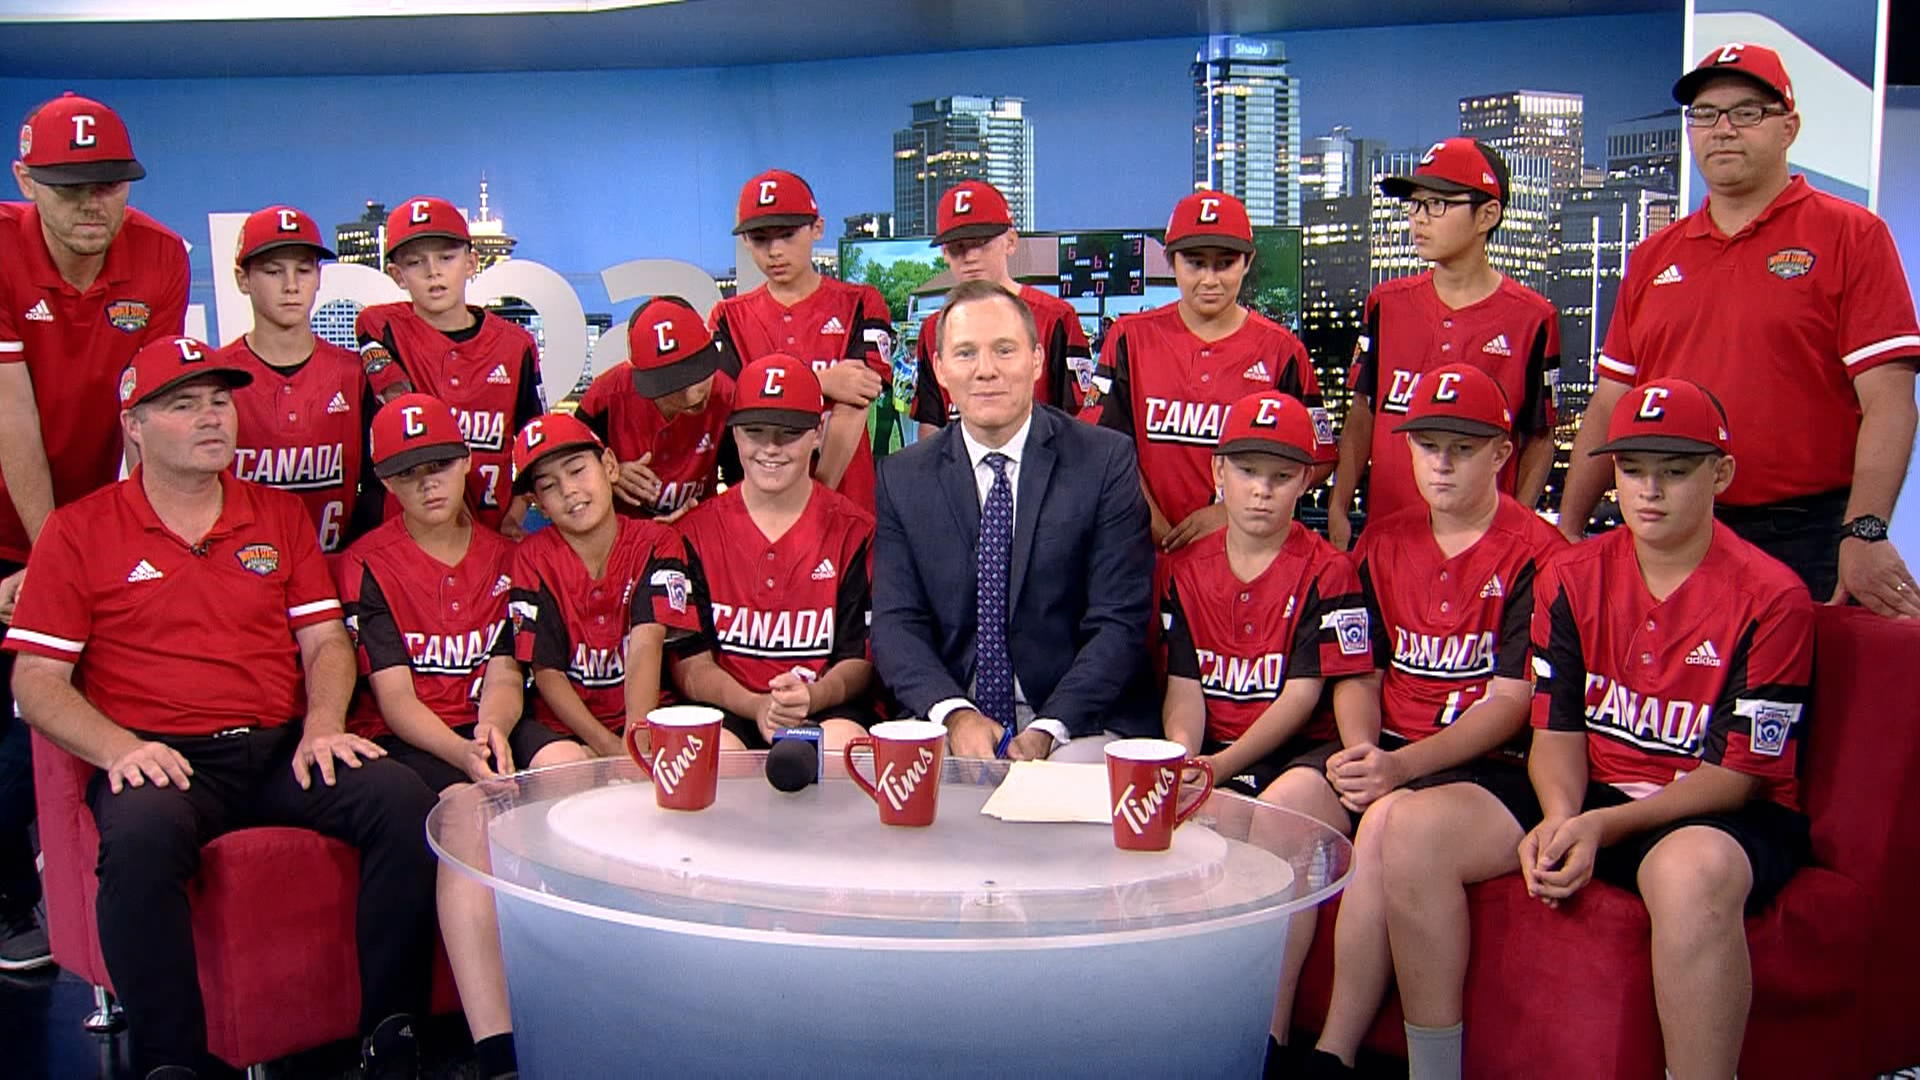 Canadian Little Leaguers return home from World Series